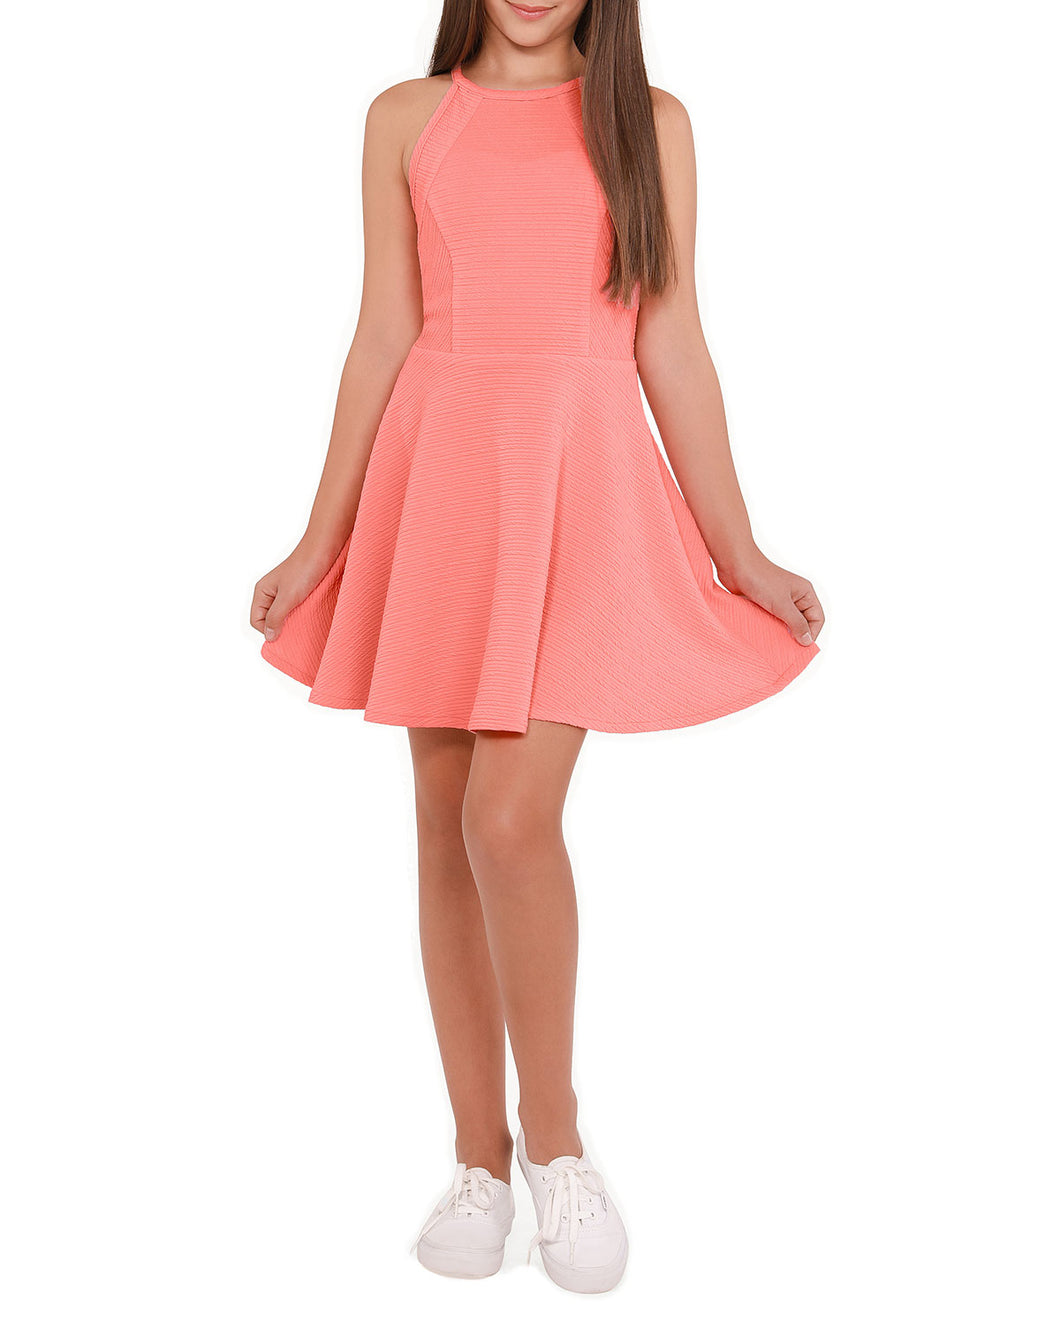 The Jodi Dress (Tween)